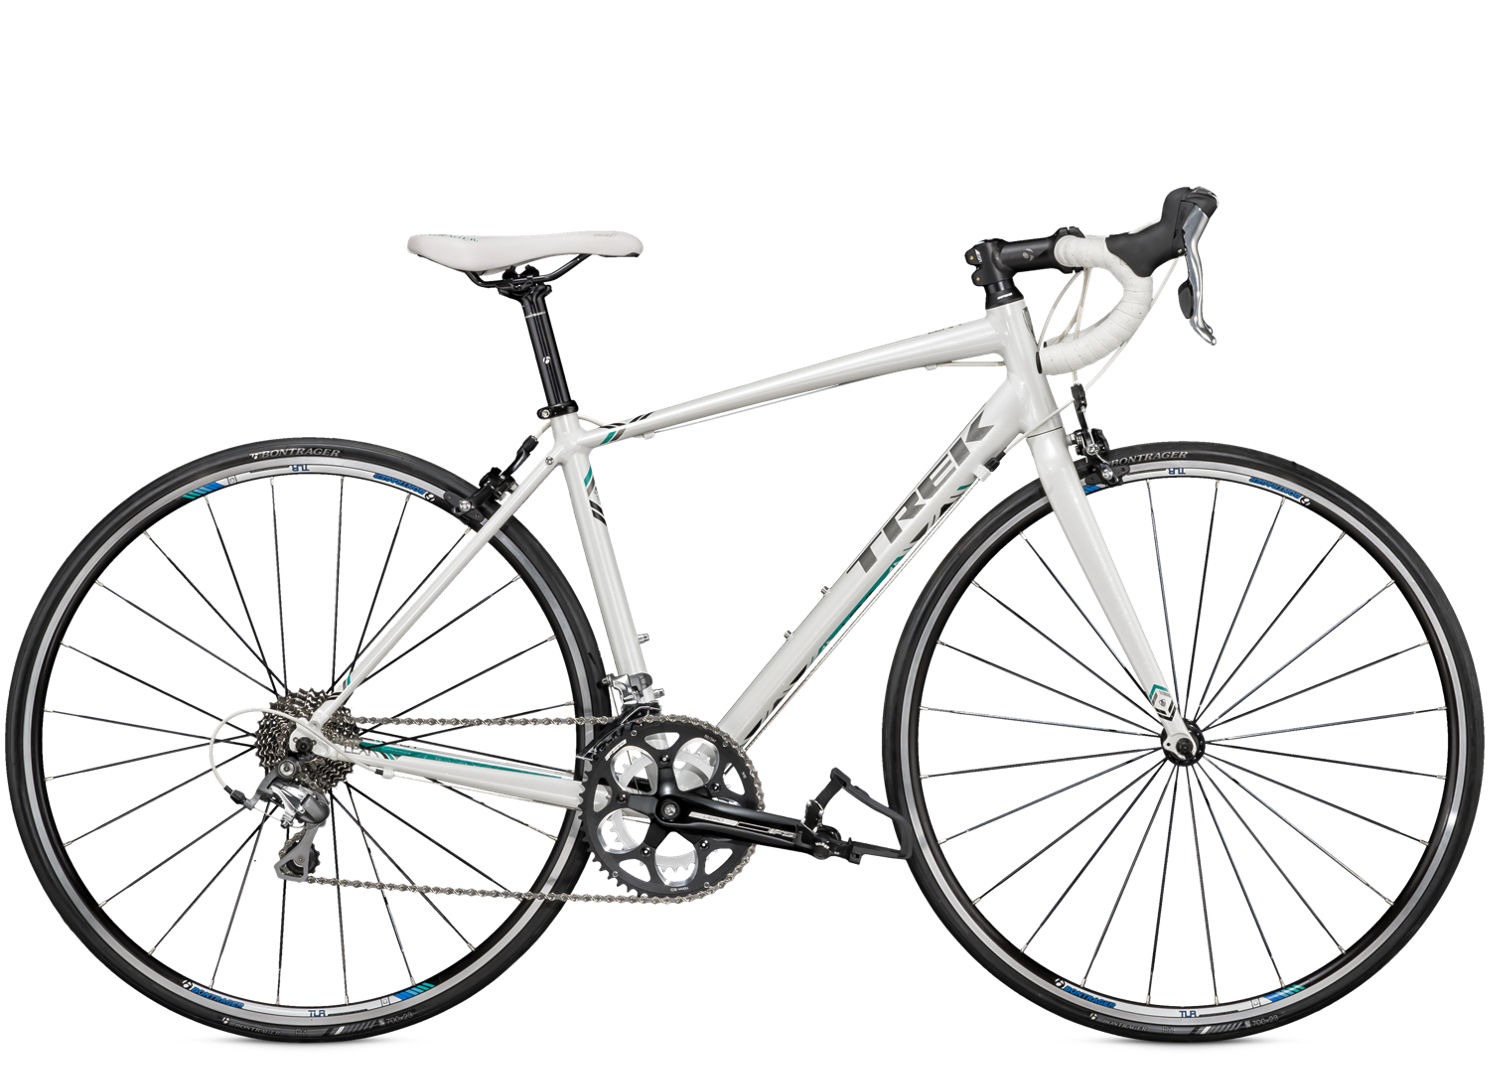 Trek Lexa Sl 2015 Review The Bike List